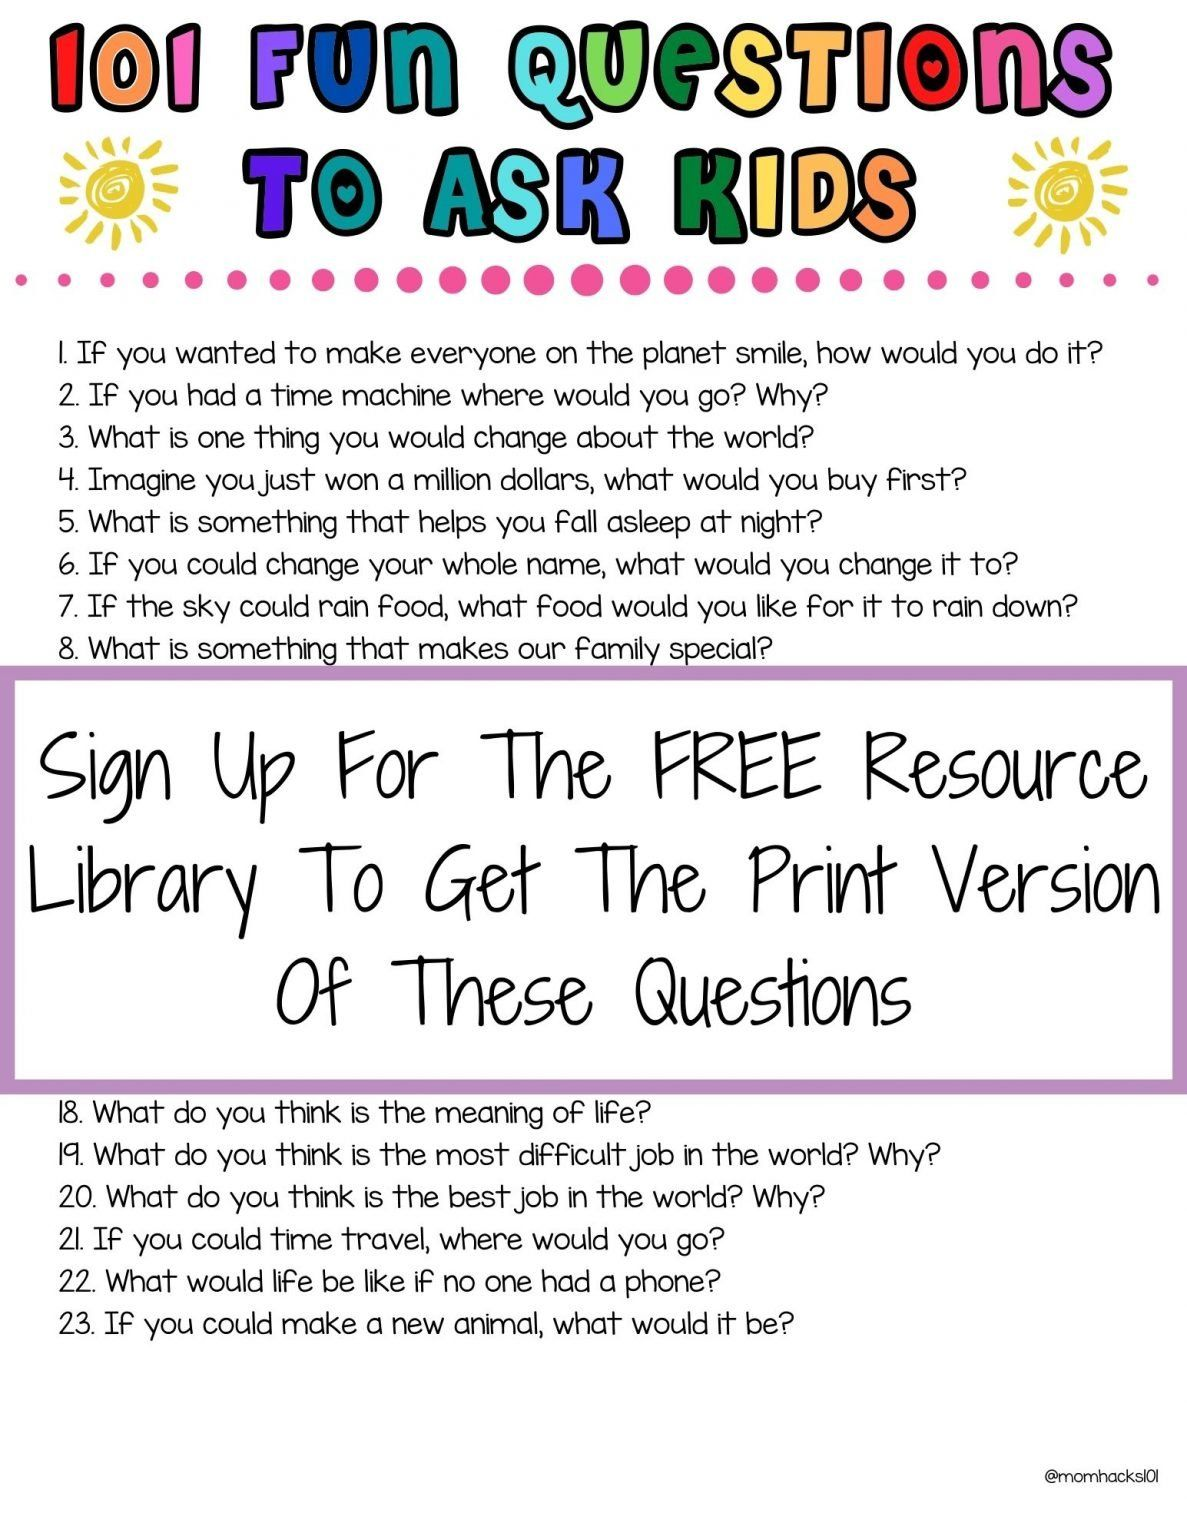 101 Fun Questions To Ask Kids To Know Them Better